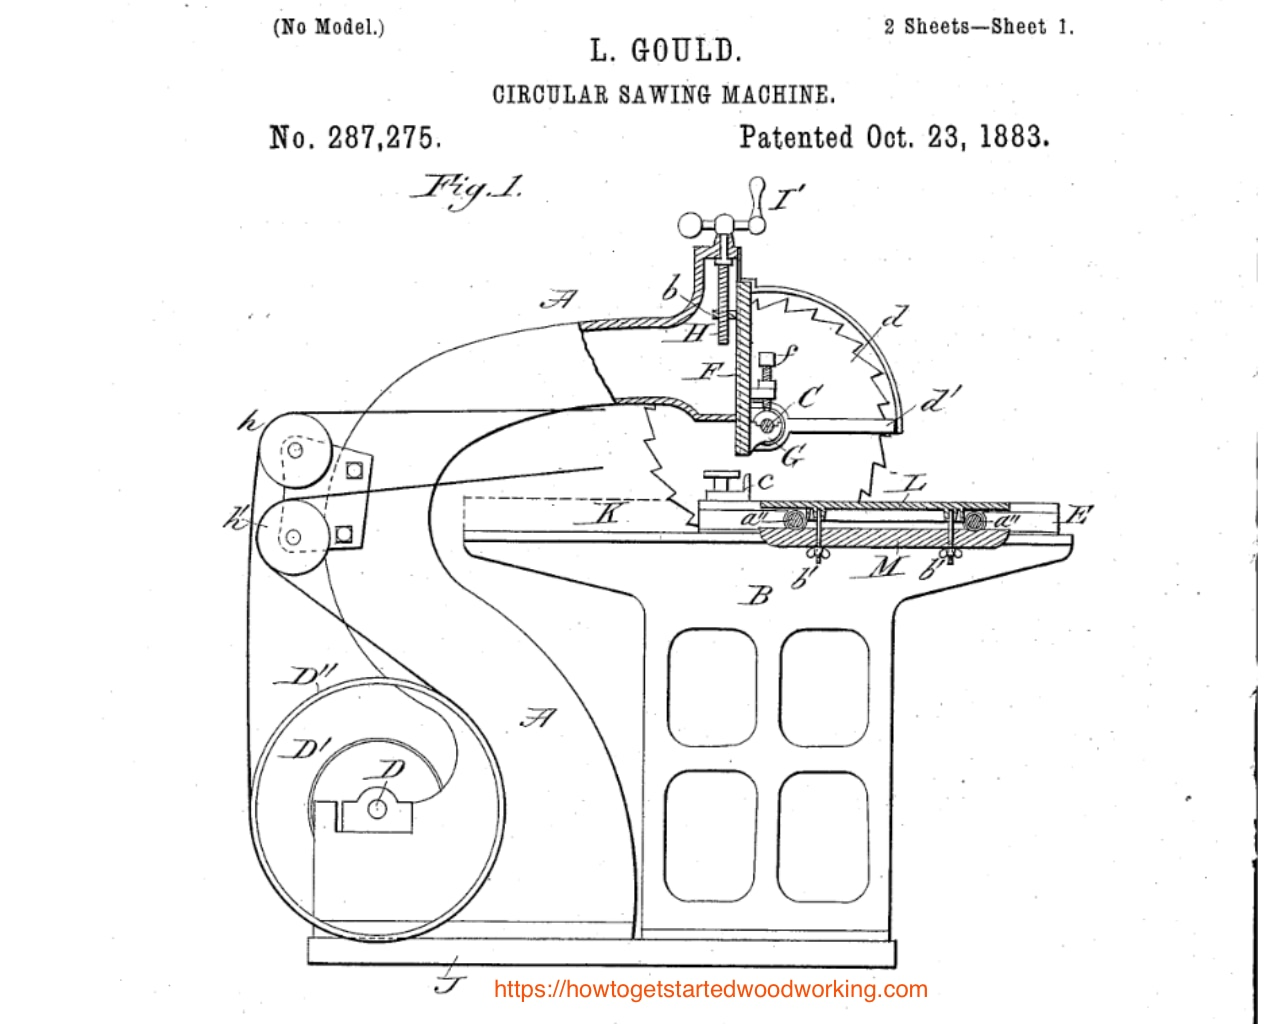 L. Gould Table Saw 1883